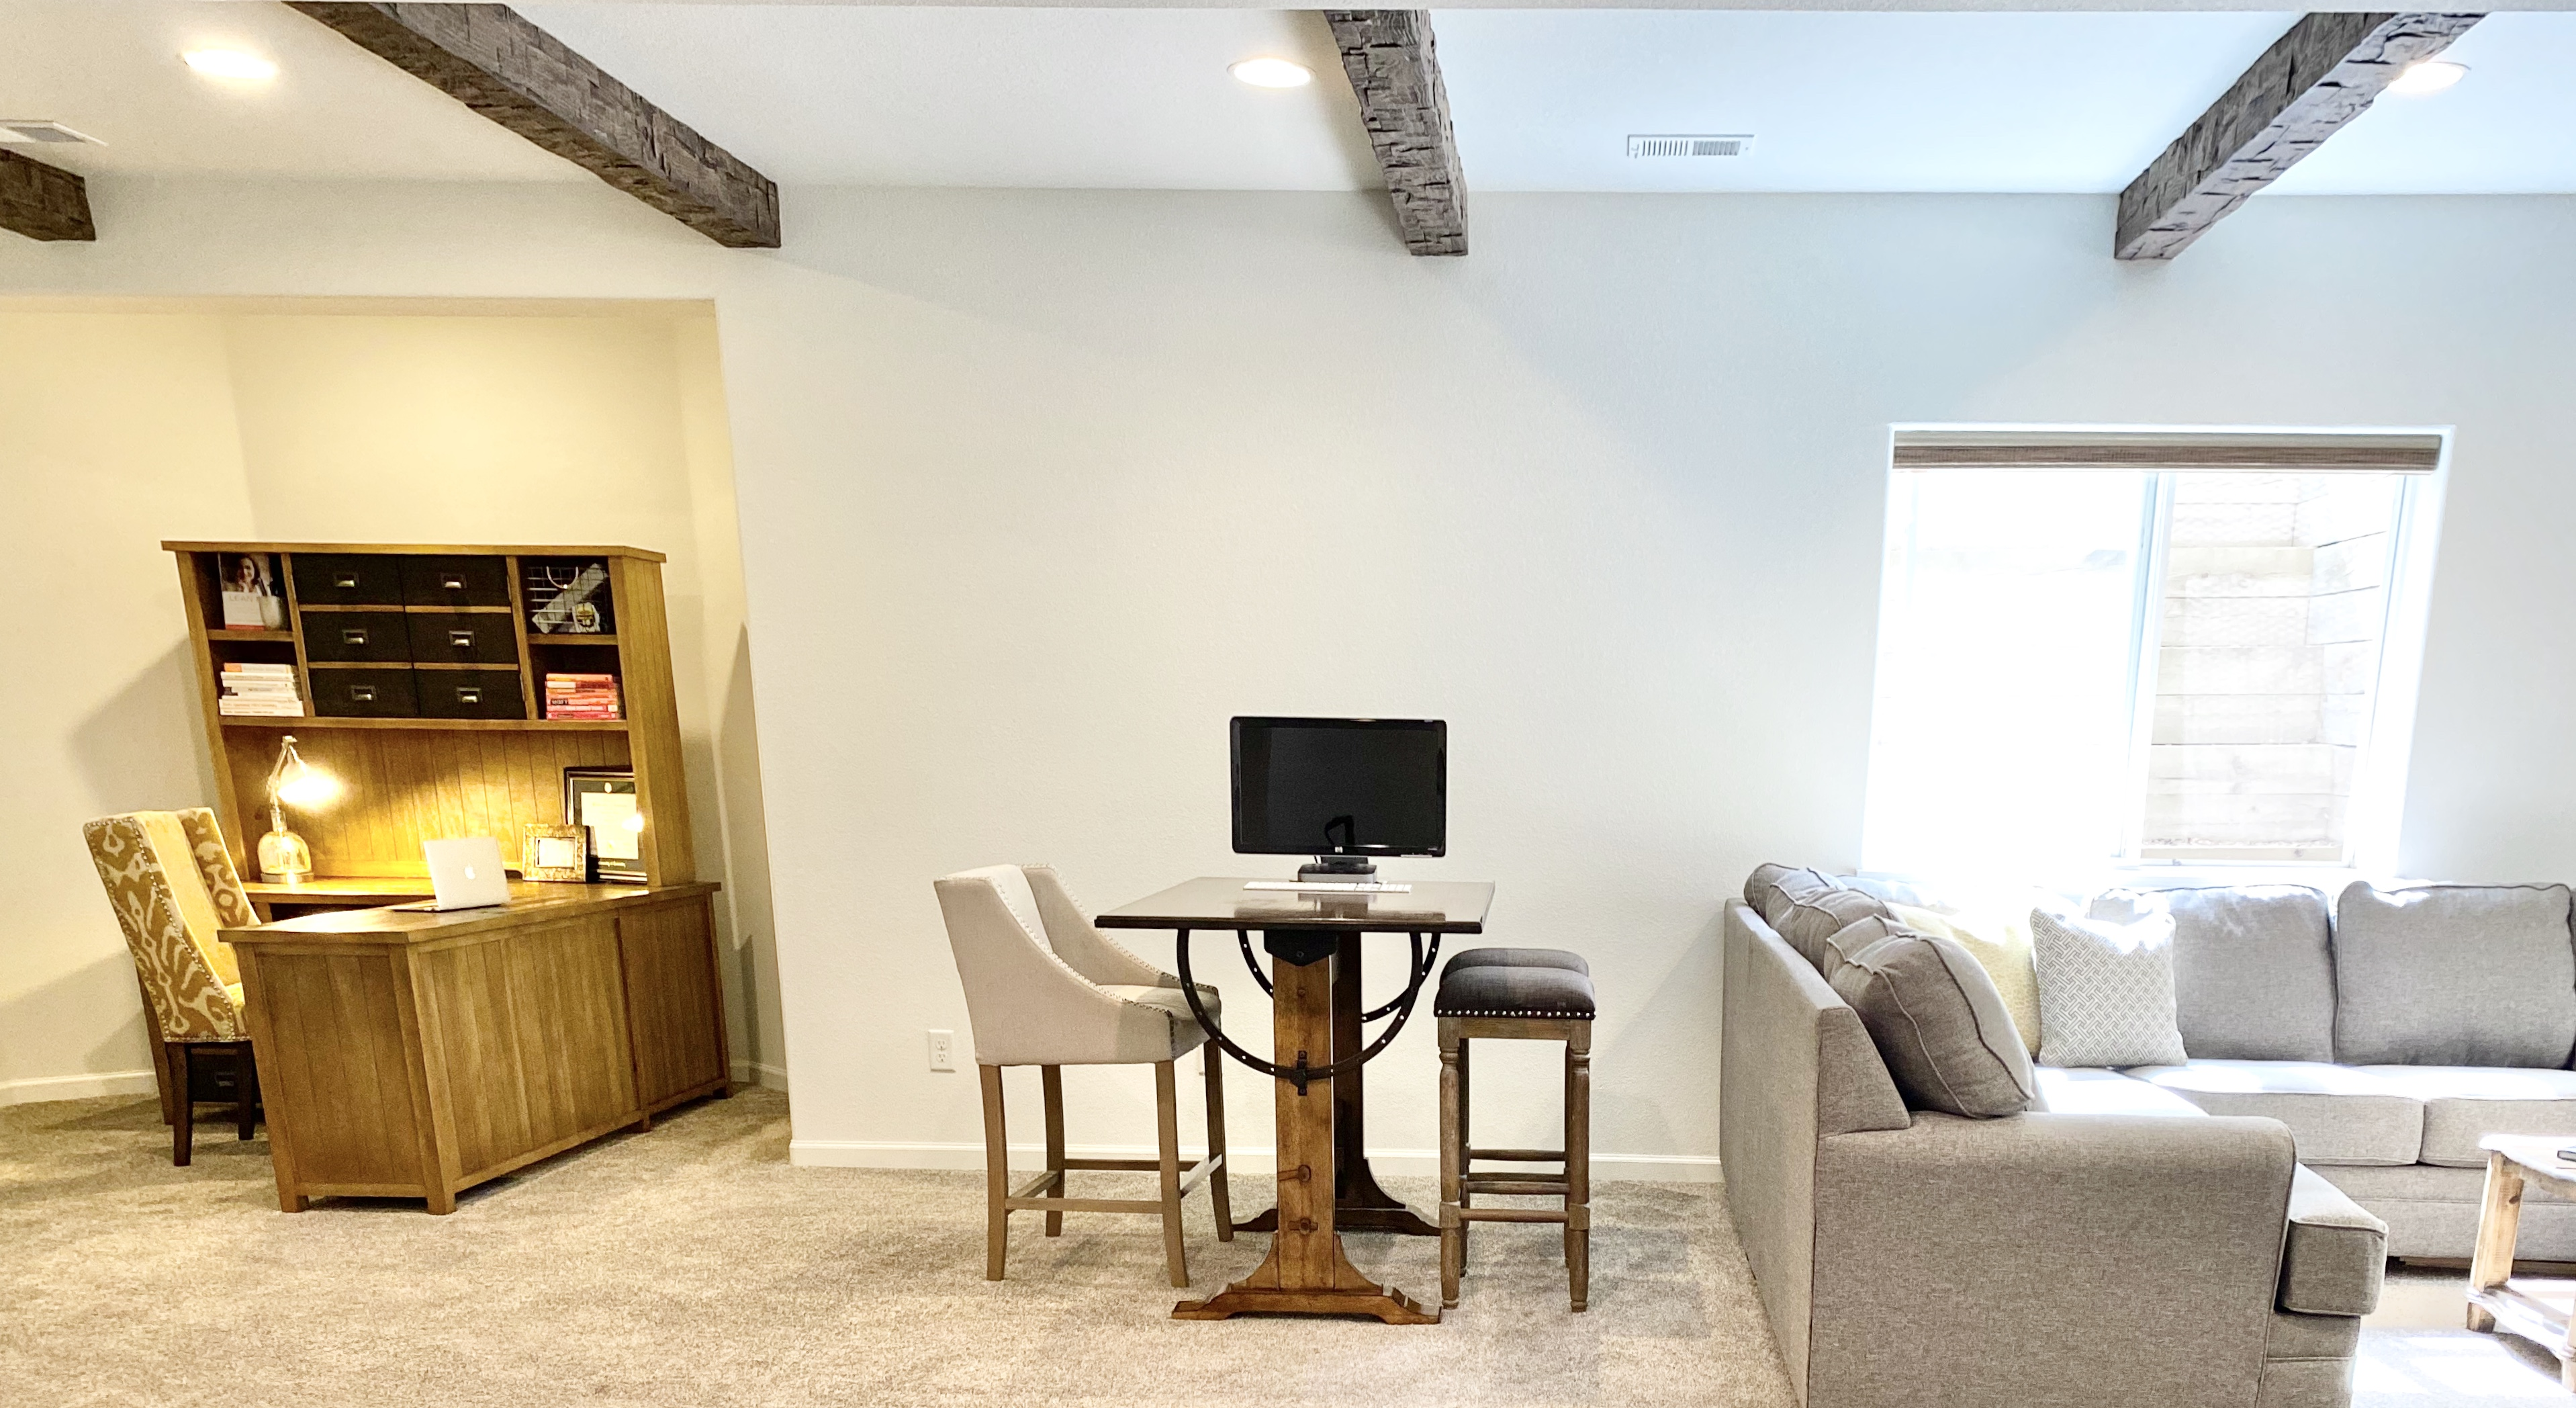 Basement home office transformation in our Fort Collins home